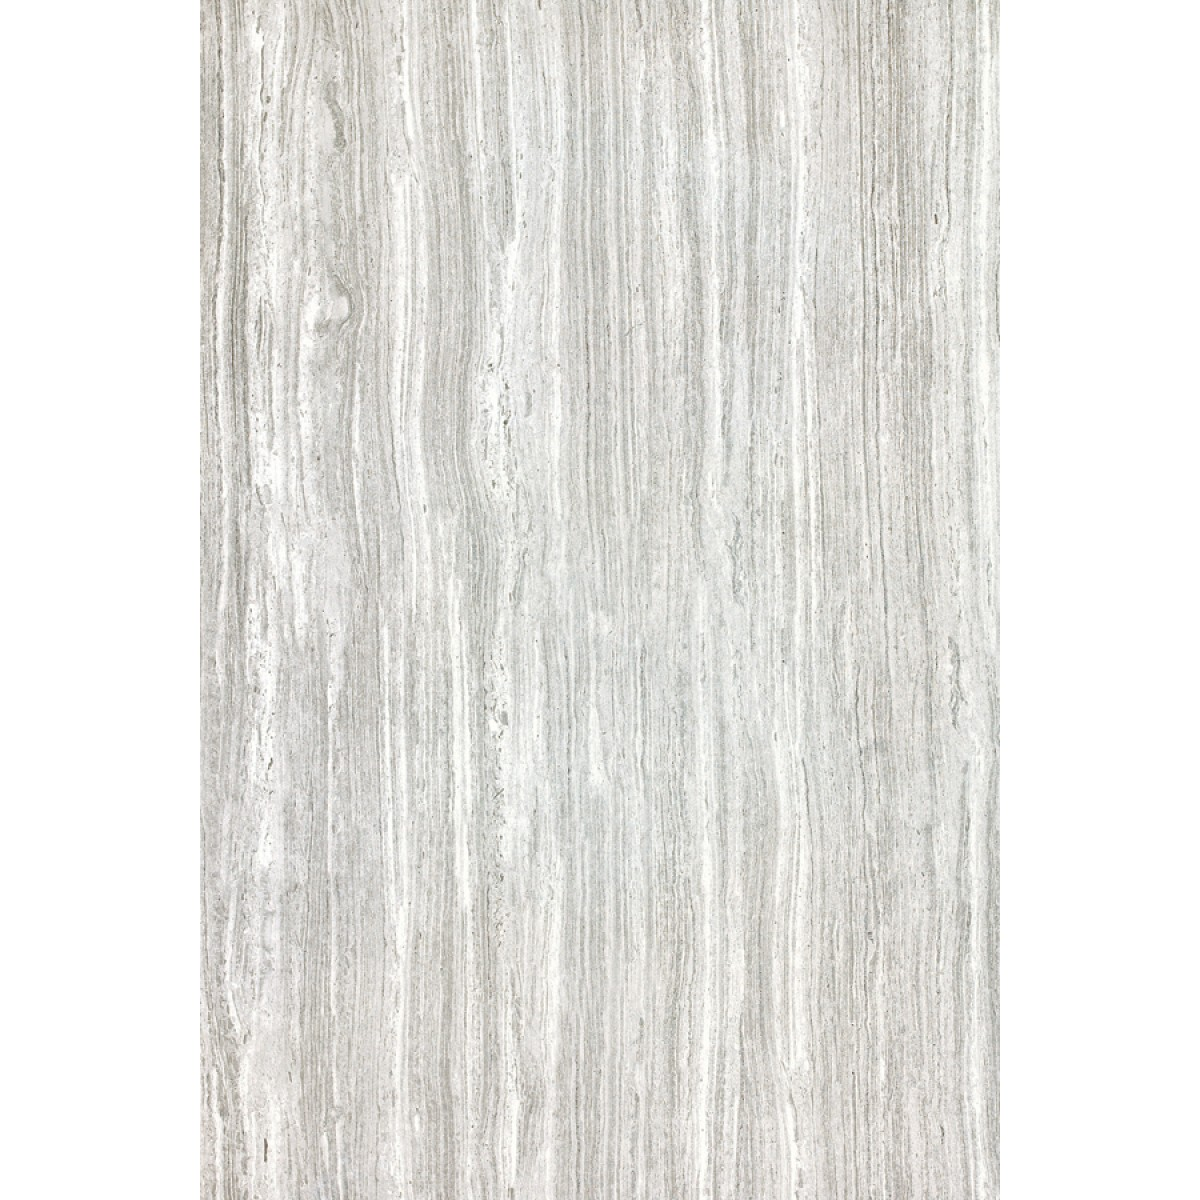 Wood Grain Grey, poliert, 900x600x12 mm